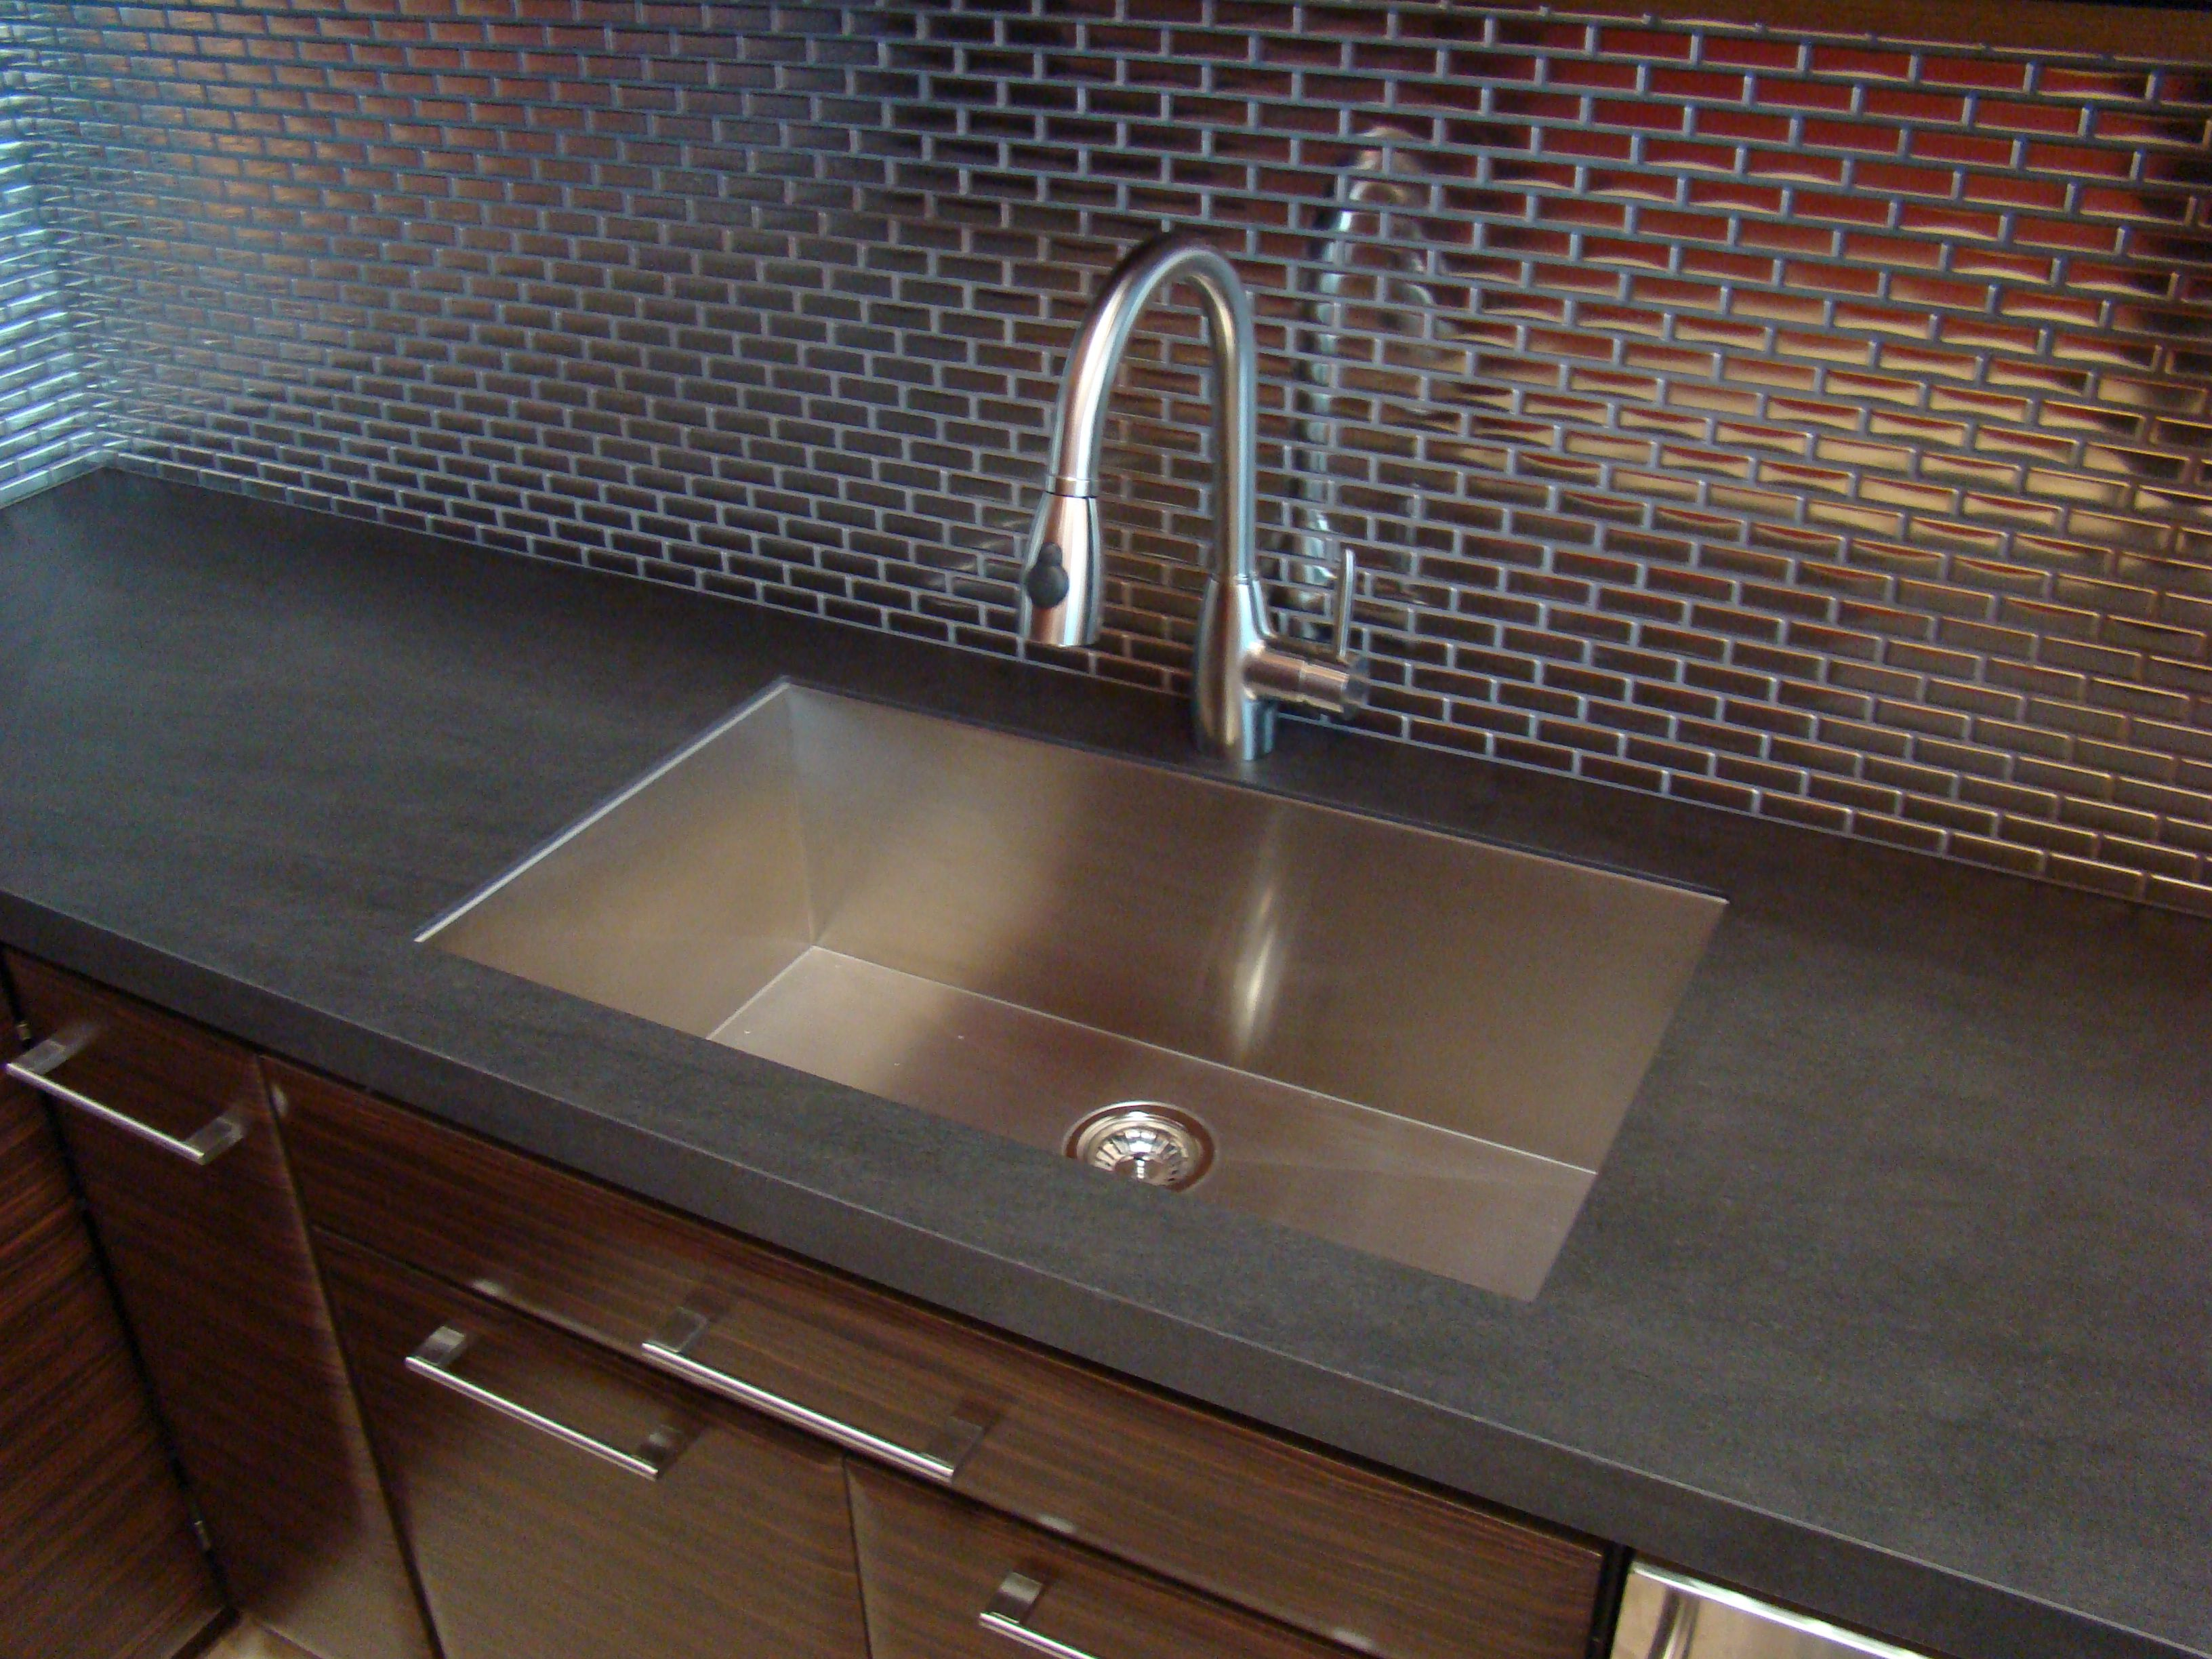 Neolith Basalt Black Kitchen Countertop Arbeitsplatte